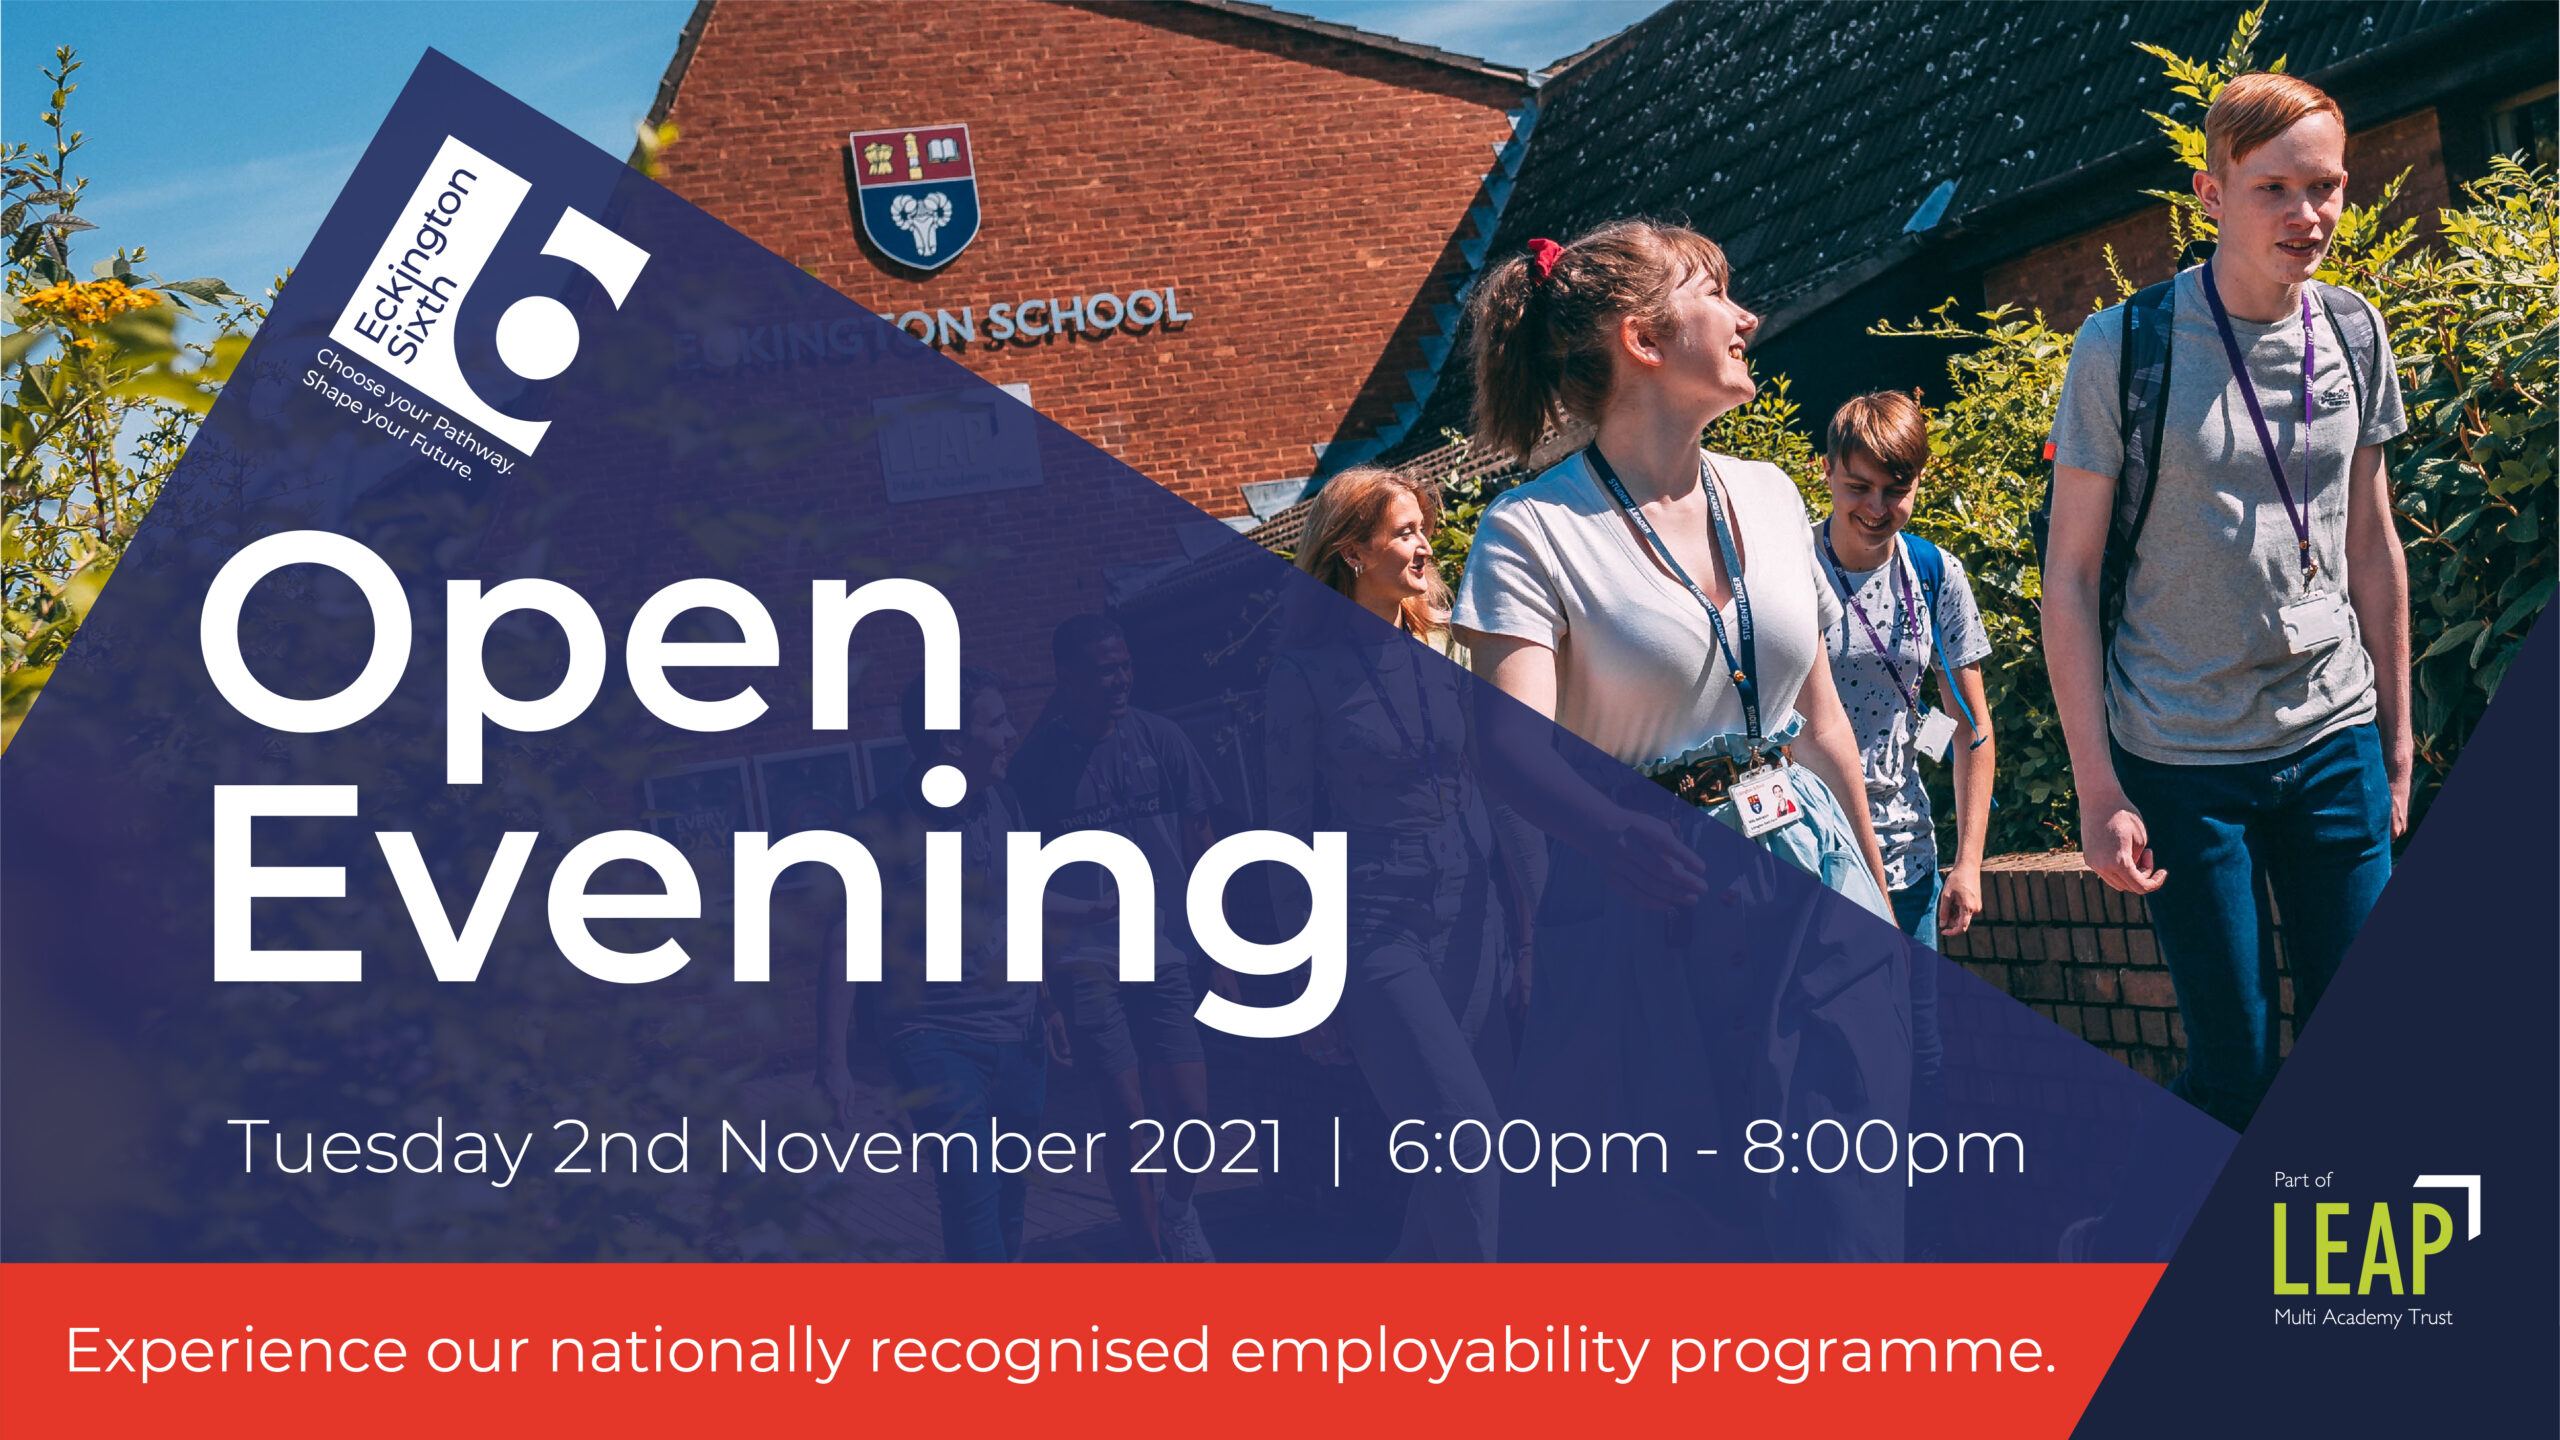 Sixth Form Open Evening - Tuesday 2nd November 6pm - 8pm